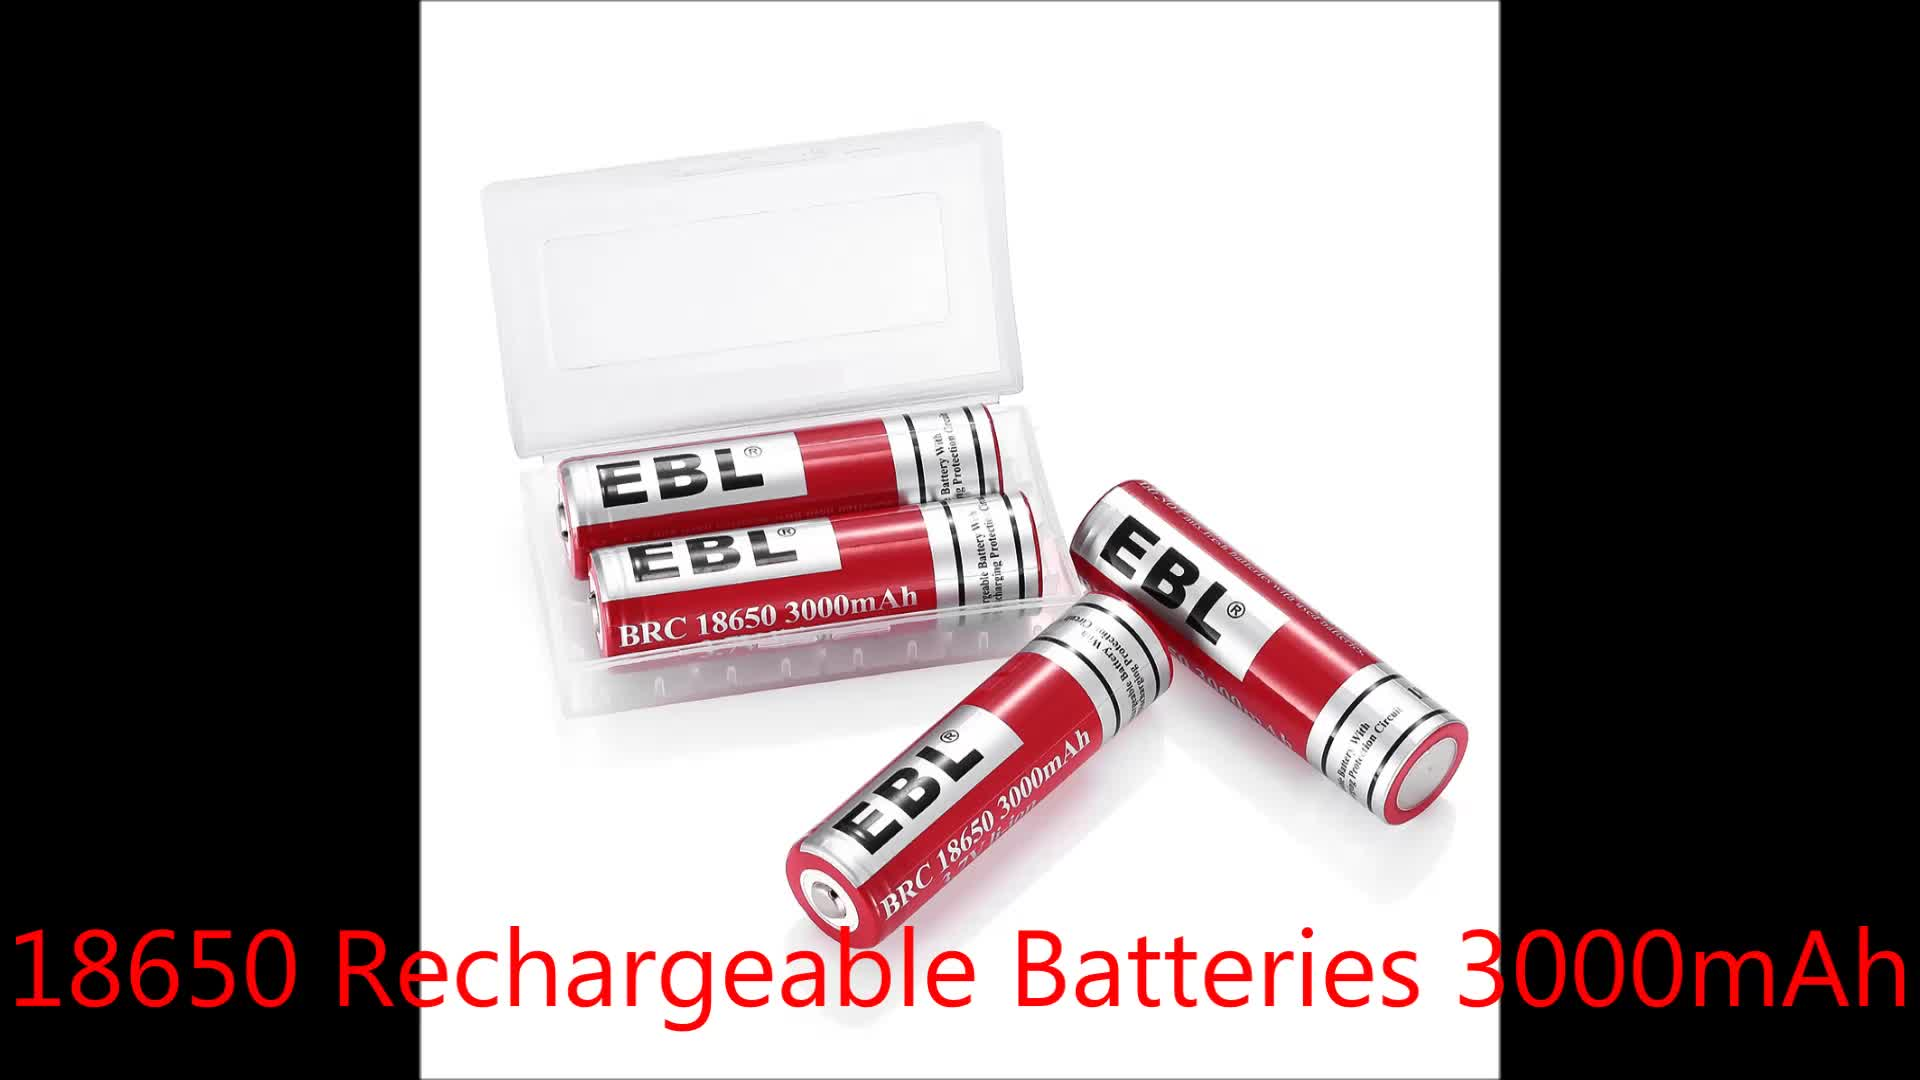 Wholesale Alibaba EBL 26650 Lithium Rechargeable Batteries 5000mAh Battery for Electronics